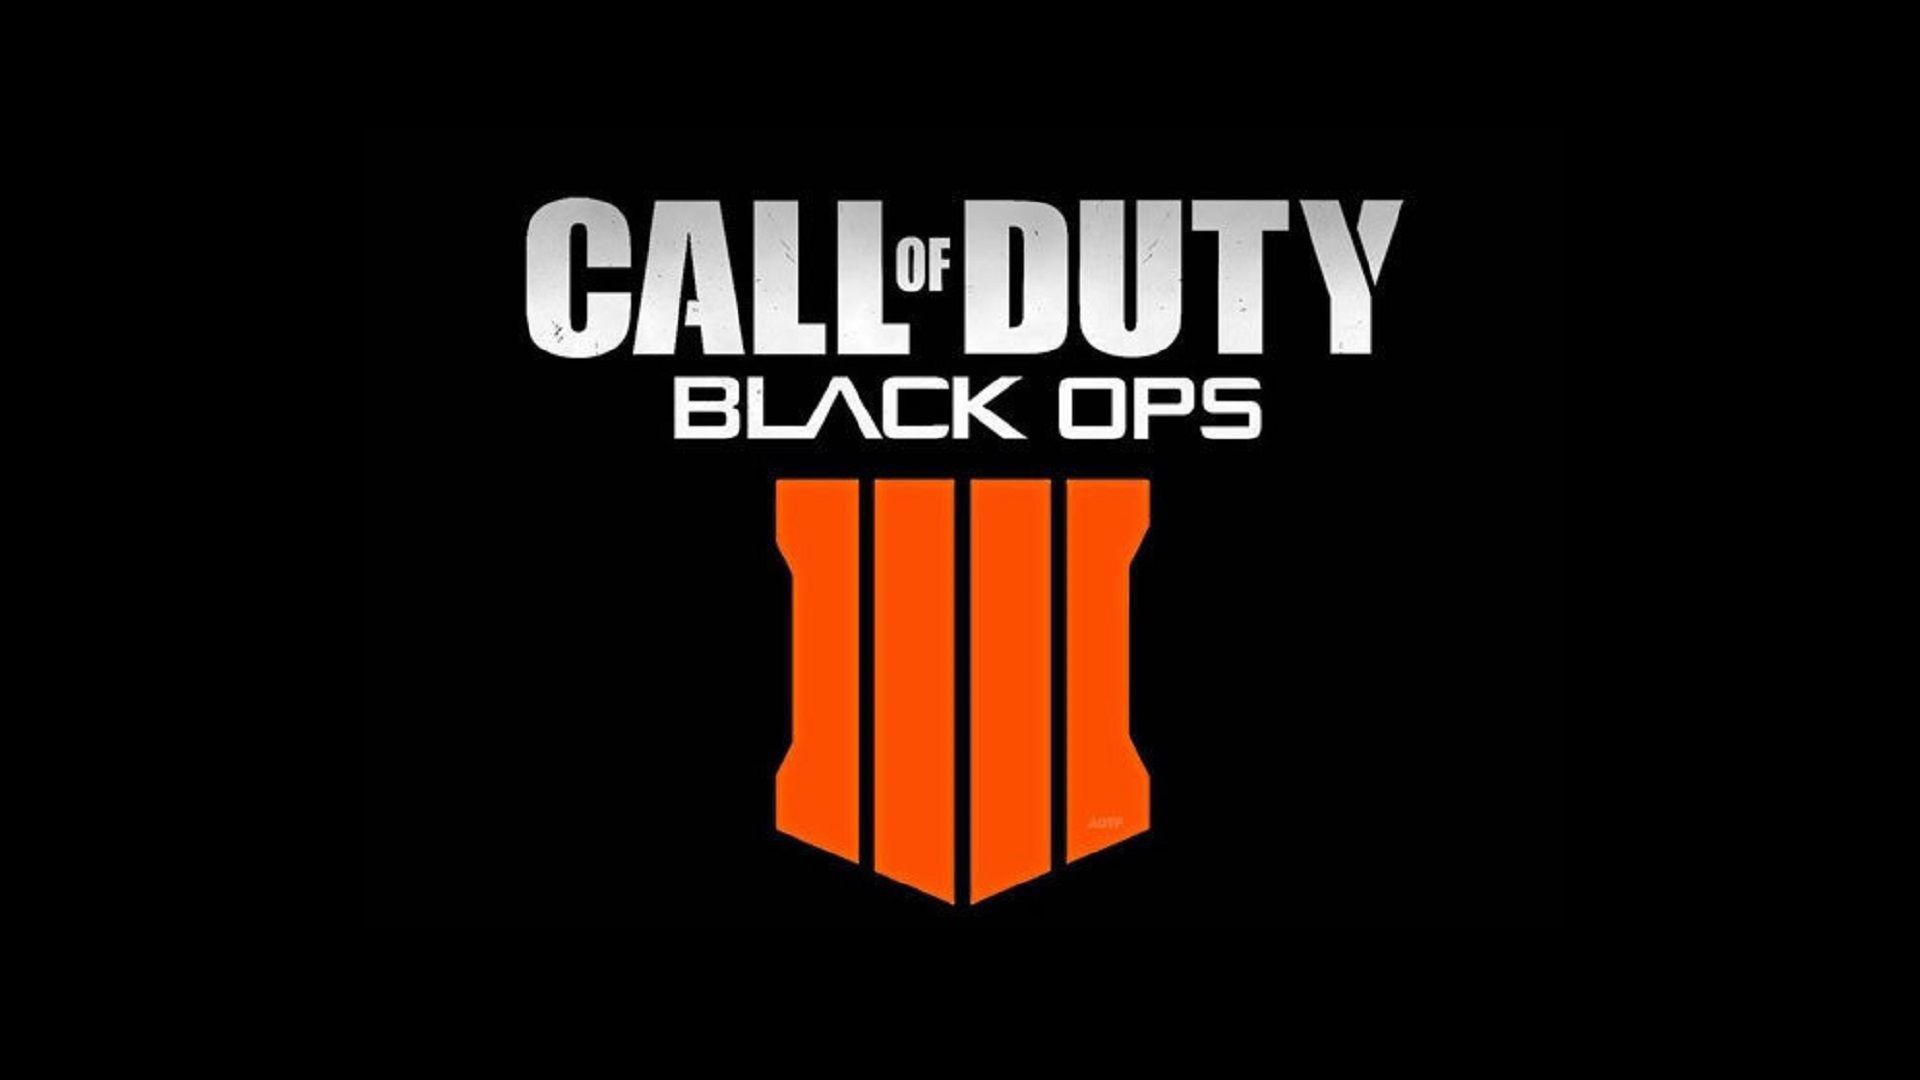 Black Ops 4 Hd Wallpapers Wallpaper Cave